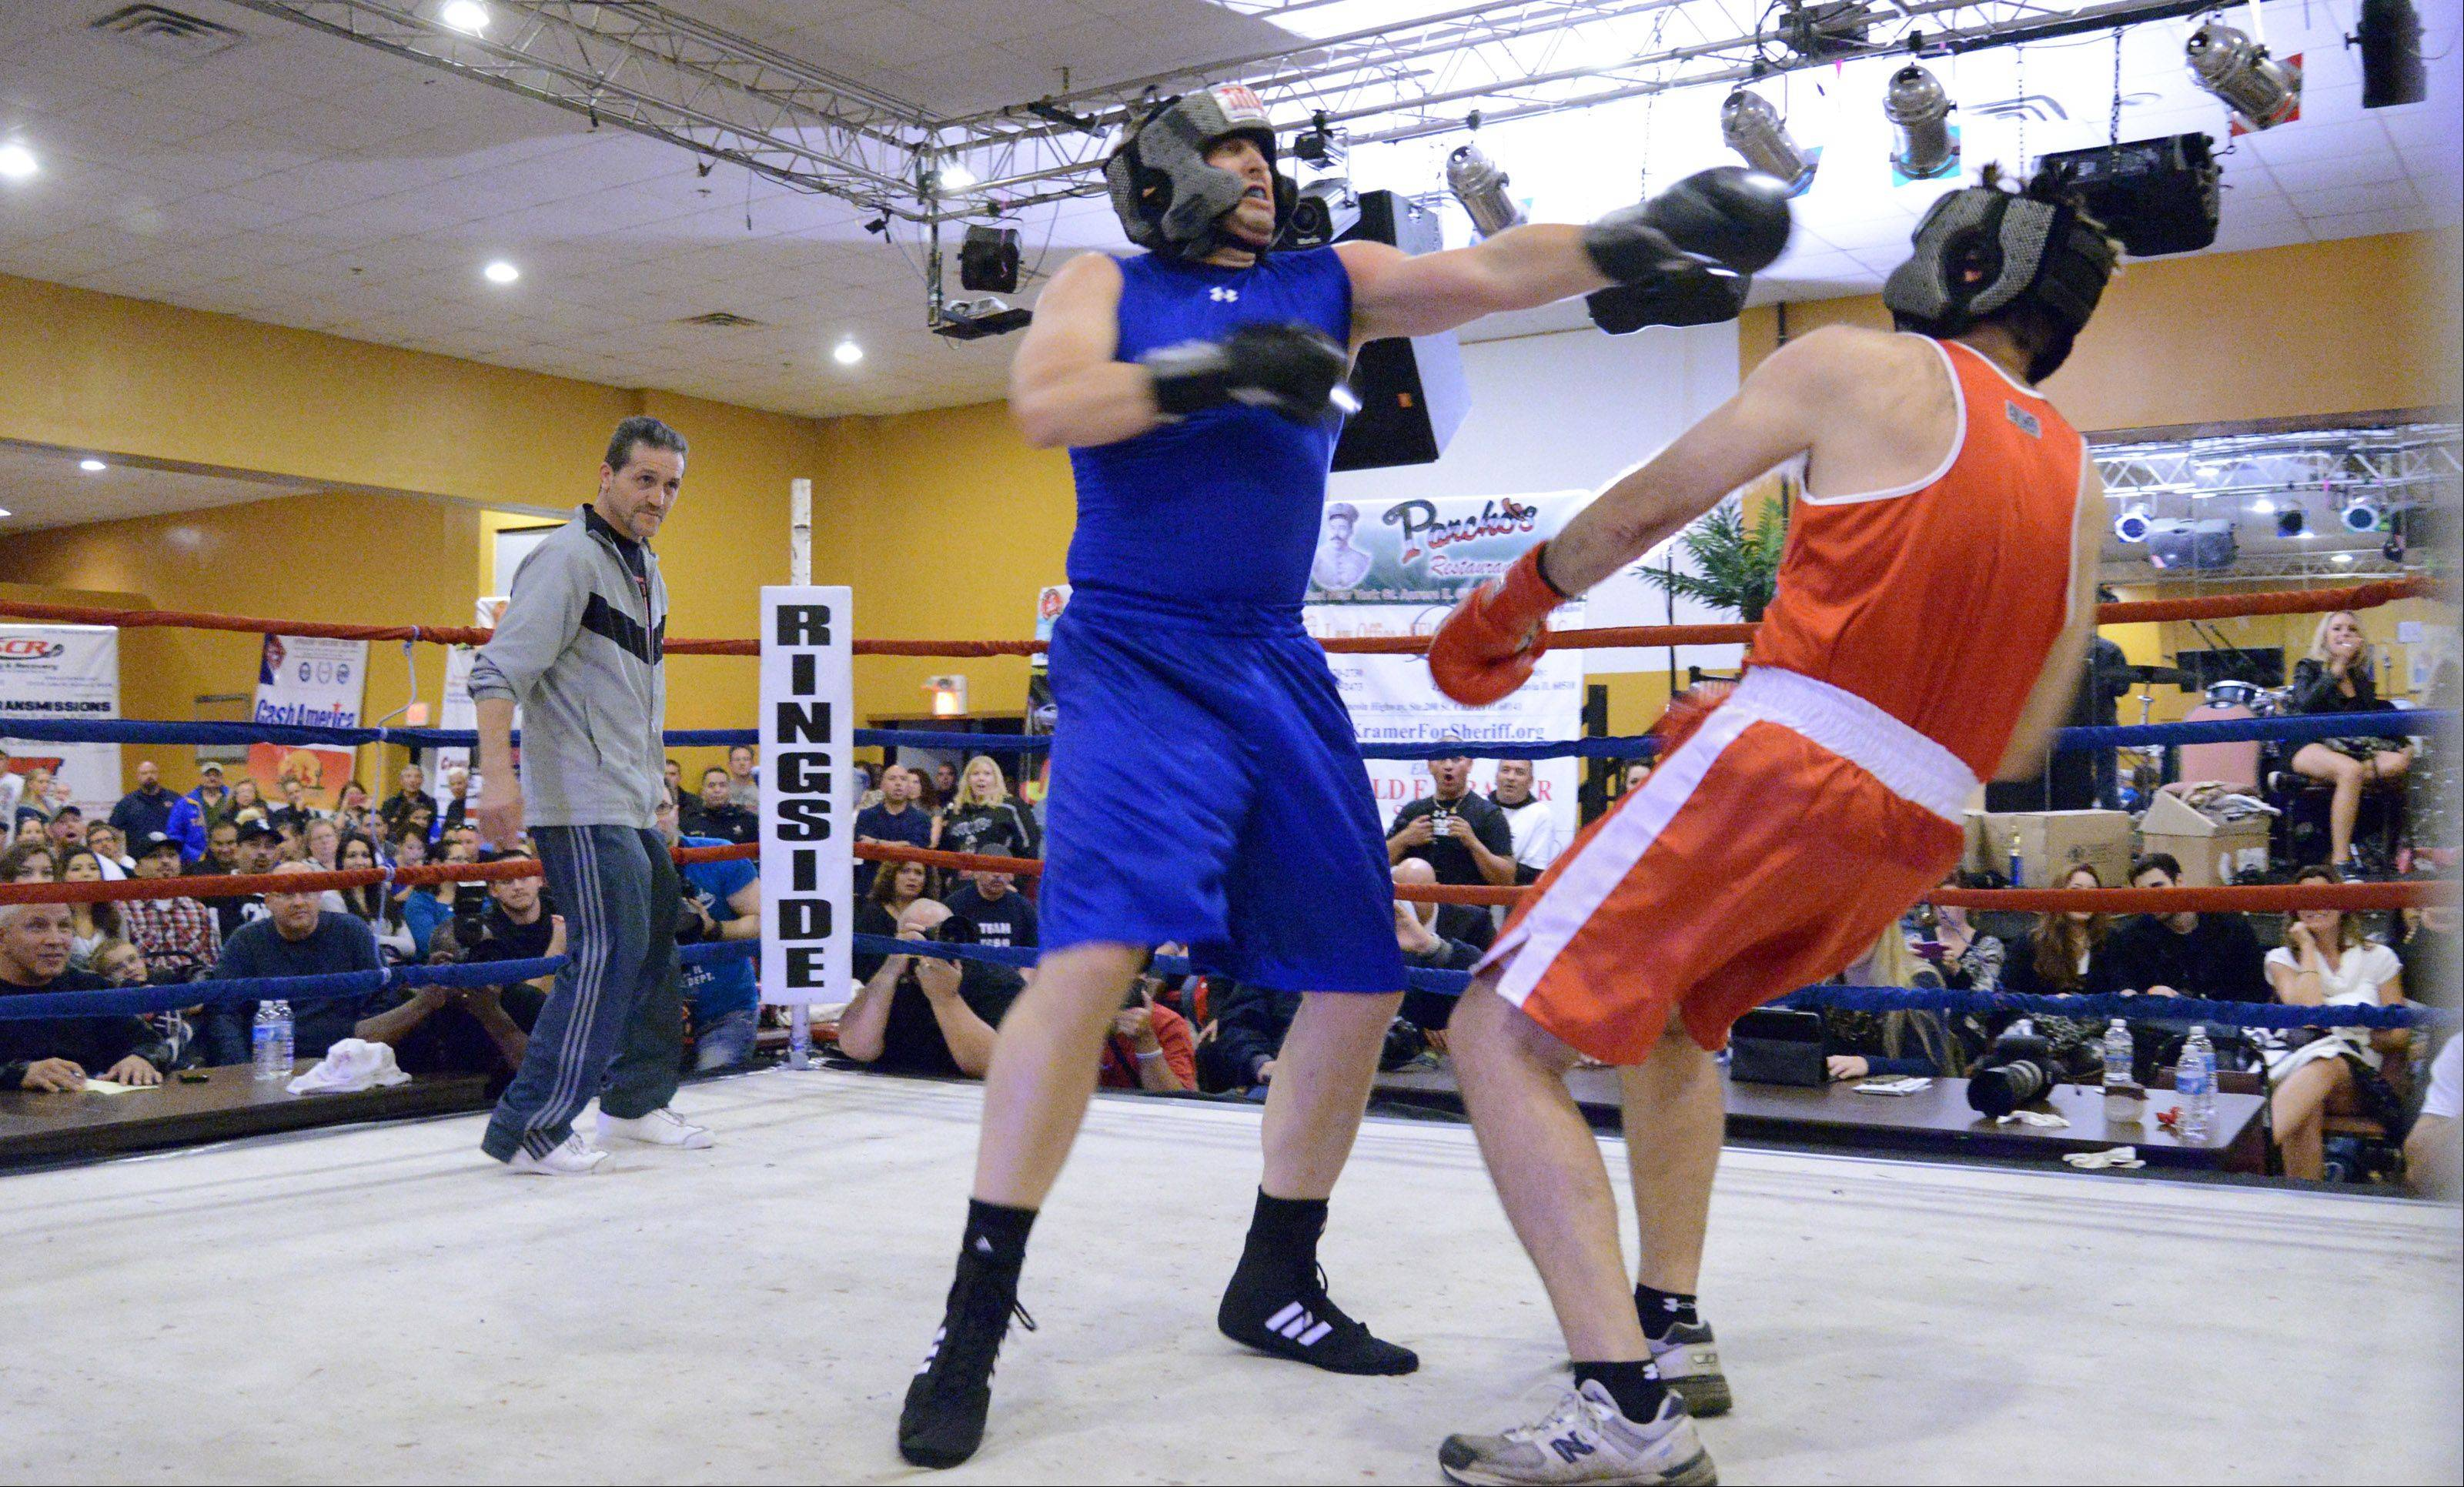 Elgin Police Chief Jeff Swoboda knocks down Aurora Police Chief Greg Thomas Sunday night at the 2nd Annual Tuition Knockout police boxing event in Aurora. The main event featured the two chiefs while earlier events featured other officers and investigators and officials.